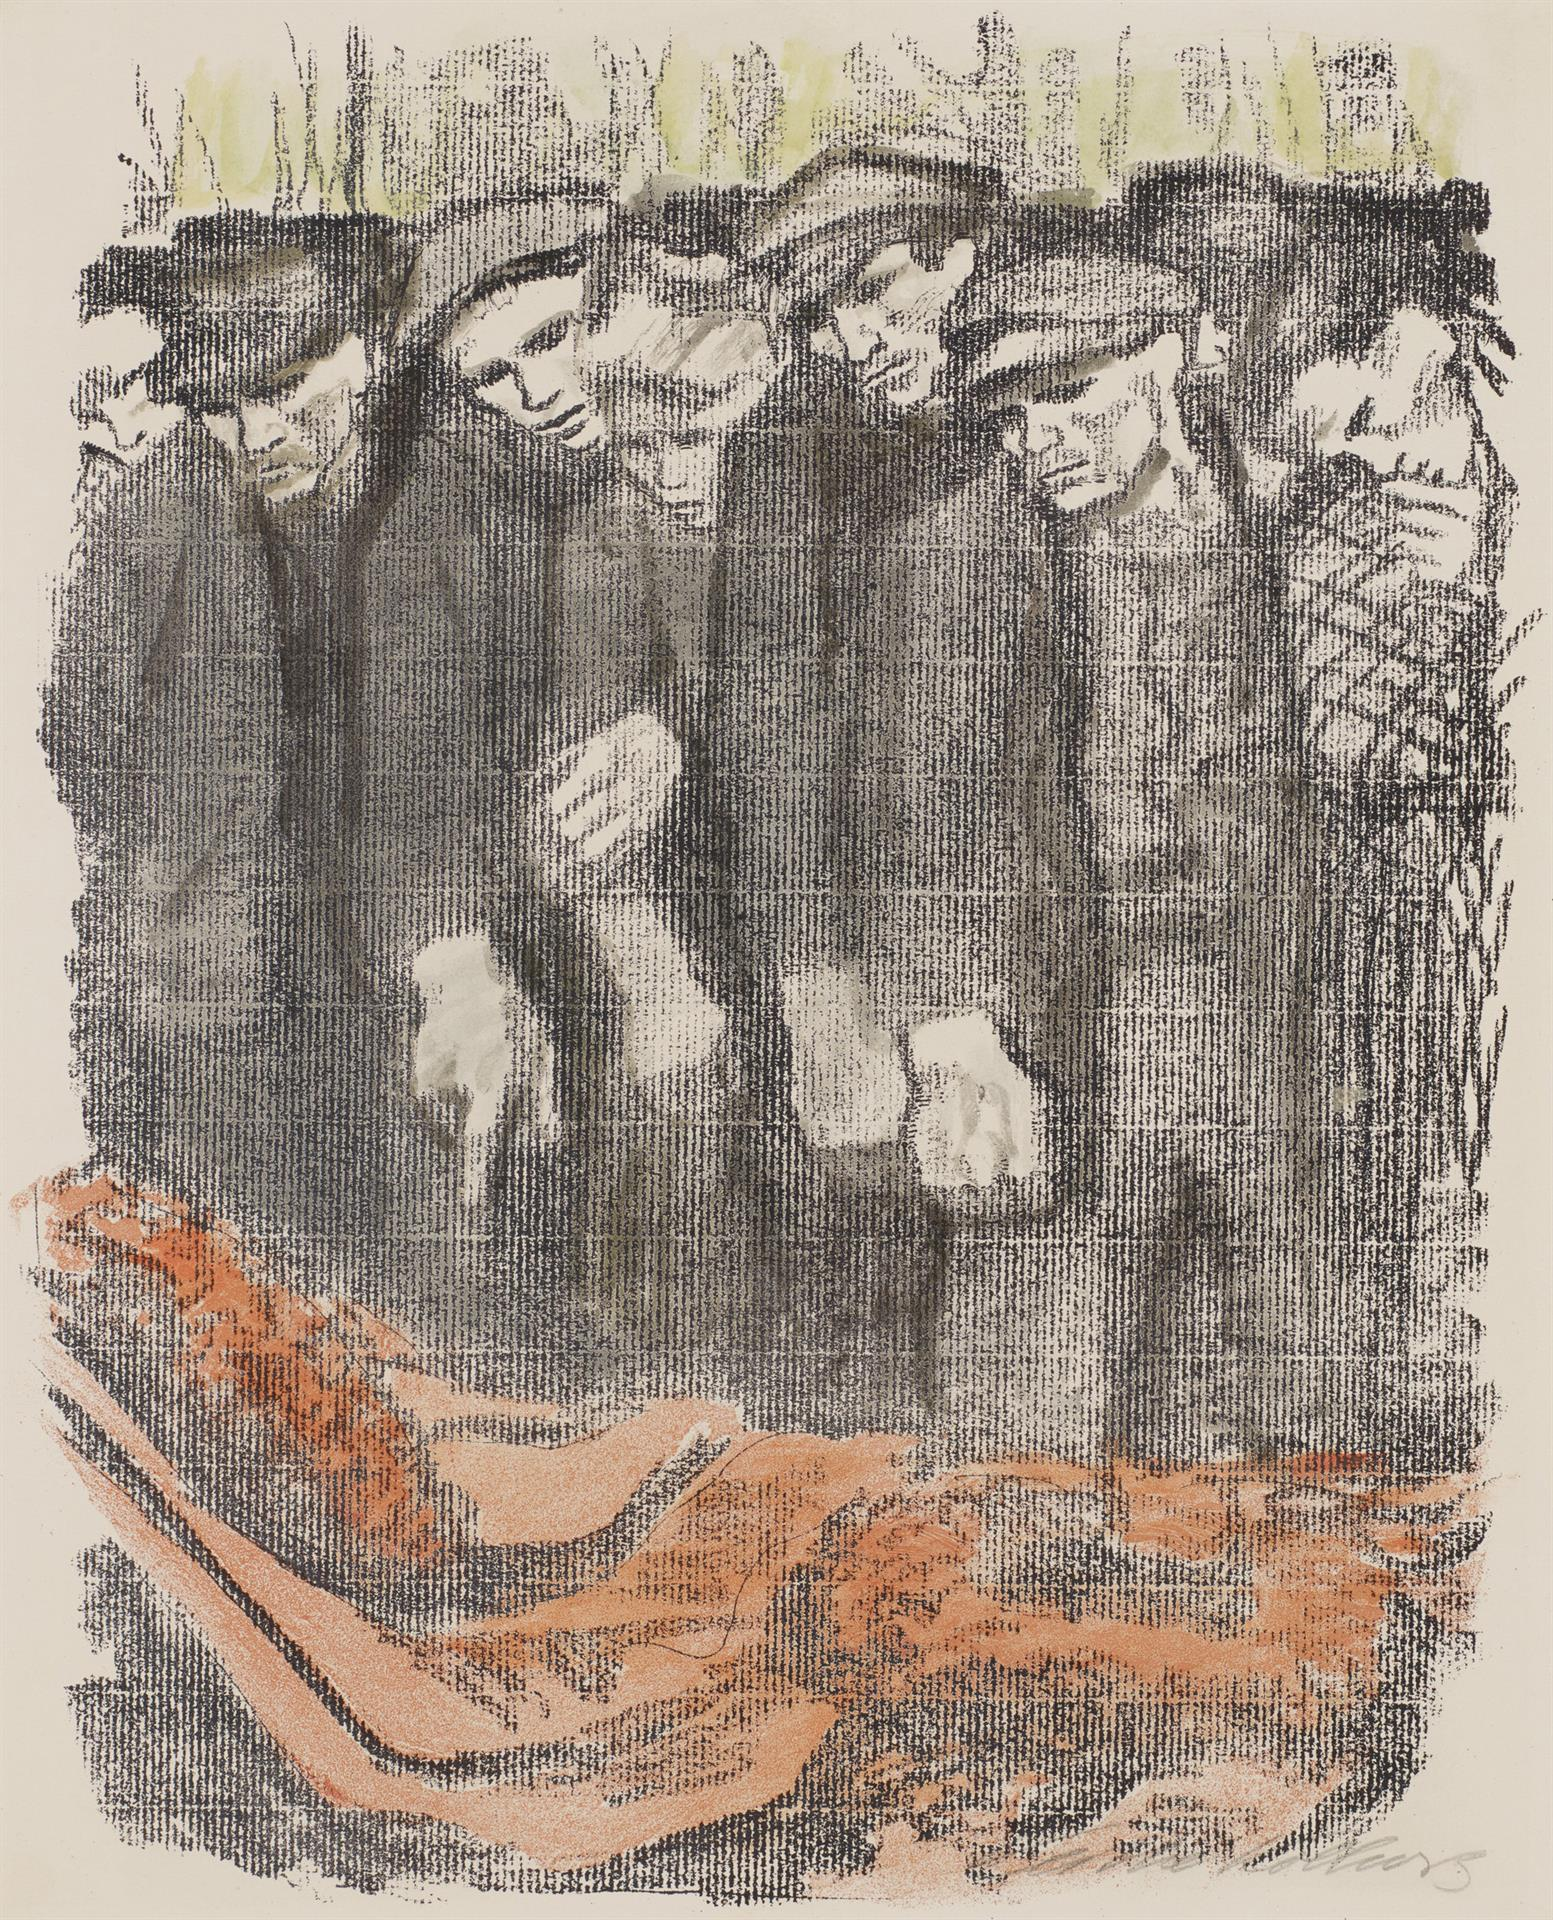 Käthe Kollwitz, March Cemetery, second version, 1913, crayon lithograph in two colors (transfer of an unknown drawing on ribbed laid paper, Kn 128, Cologne Kollwitz Collection © Käthe Kollwitz Museum Köln